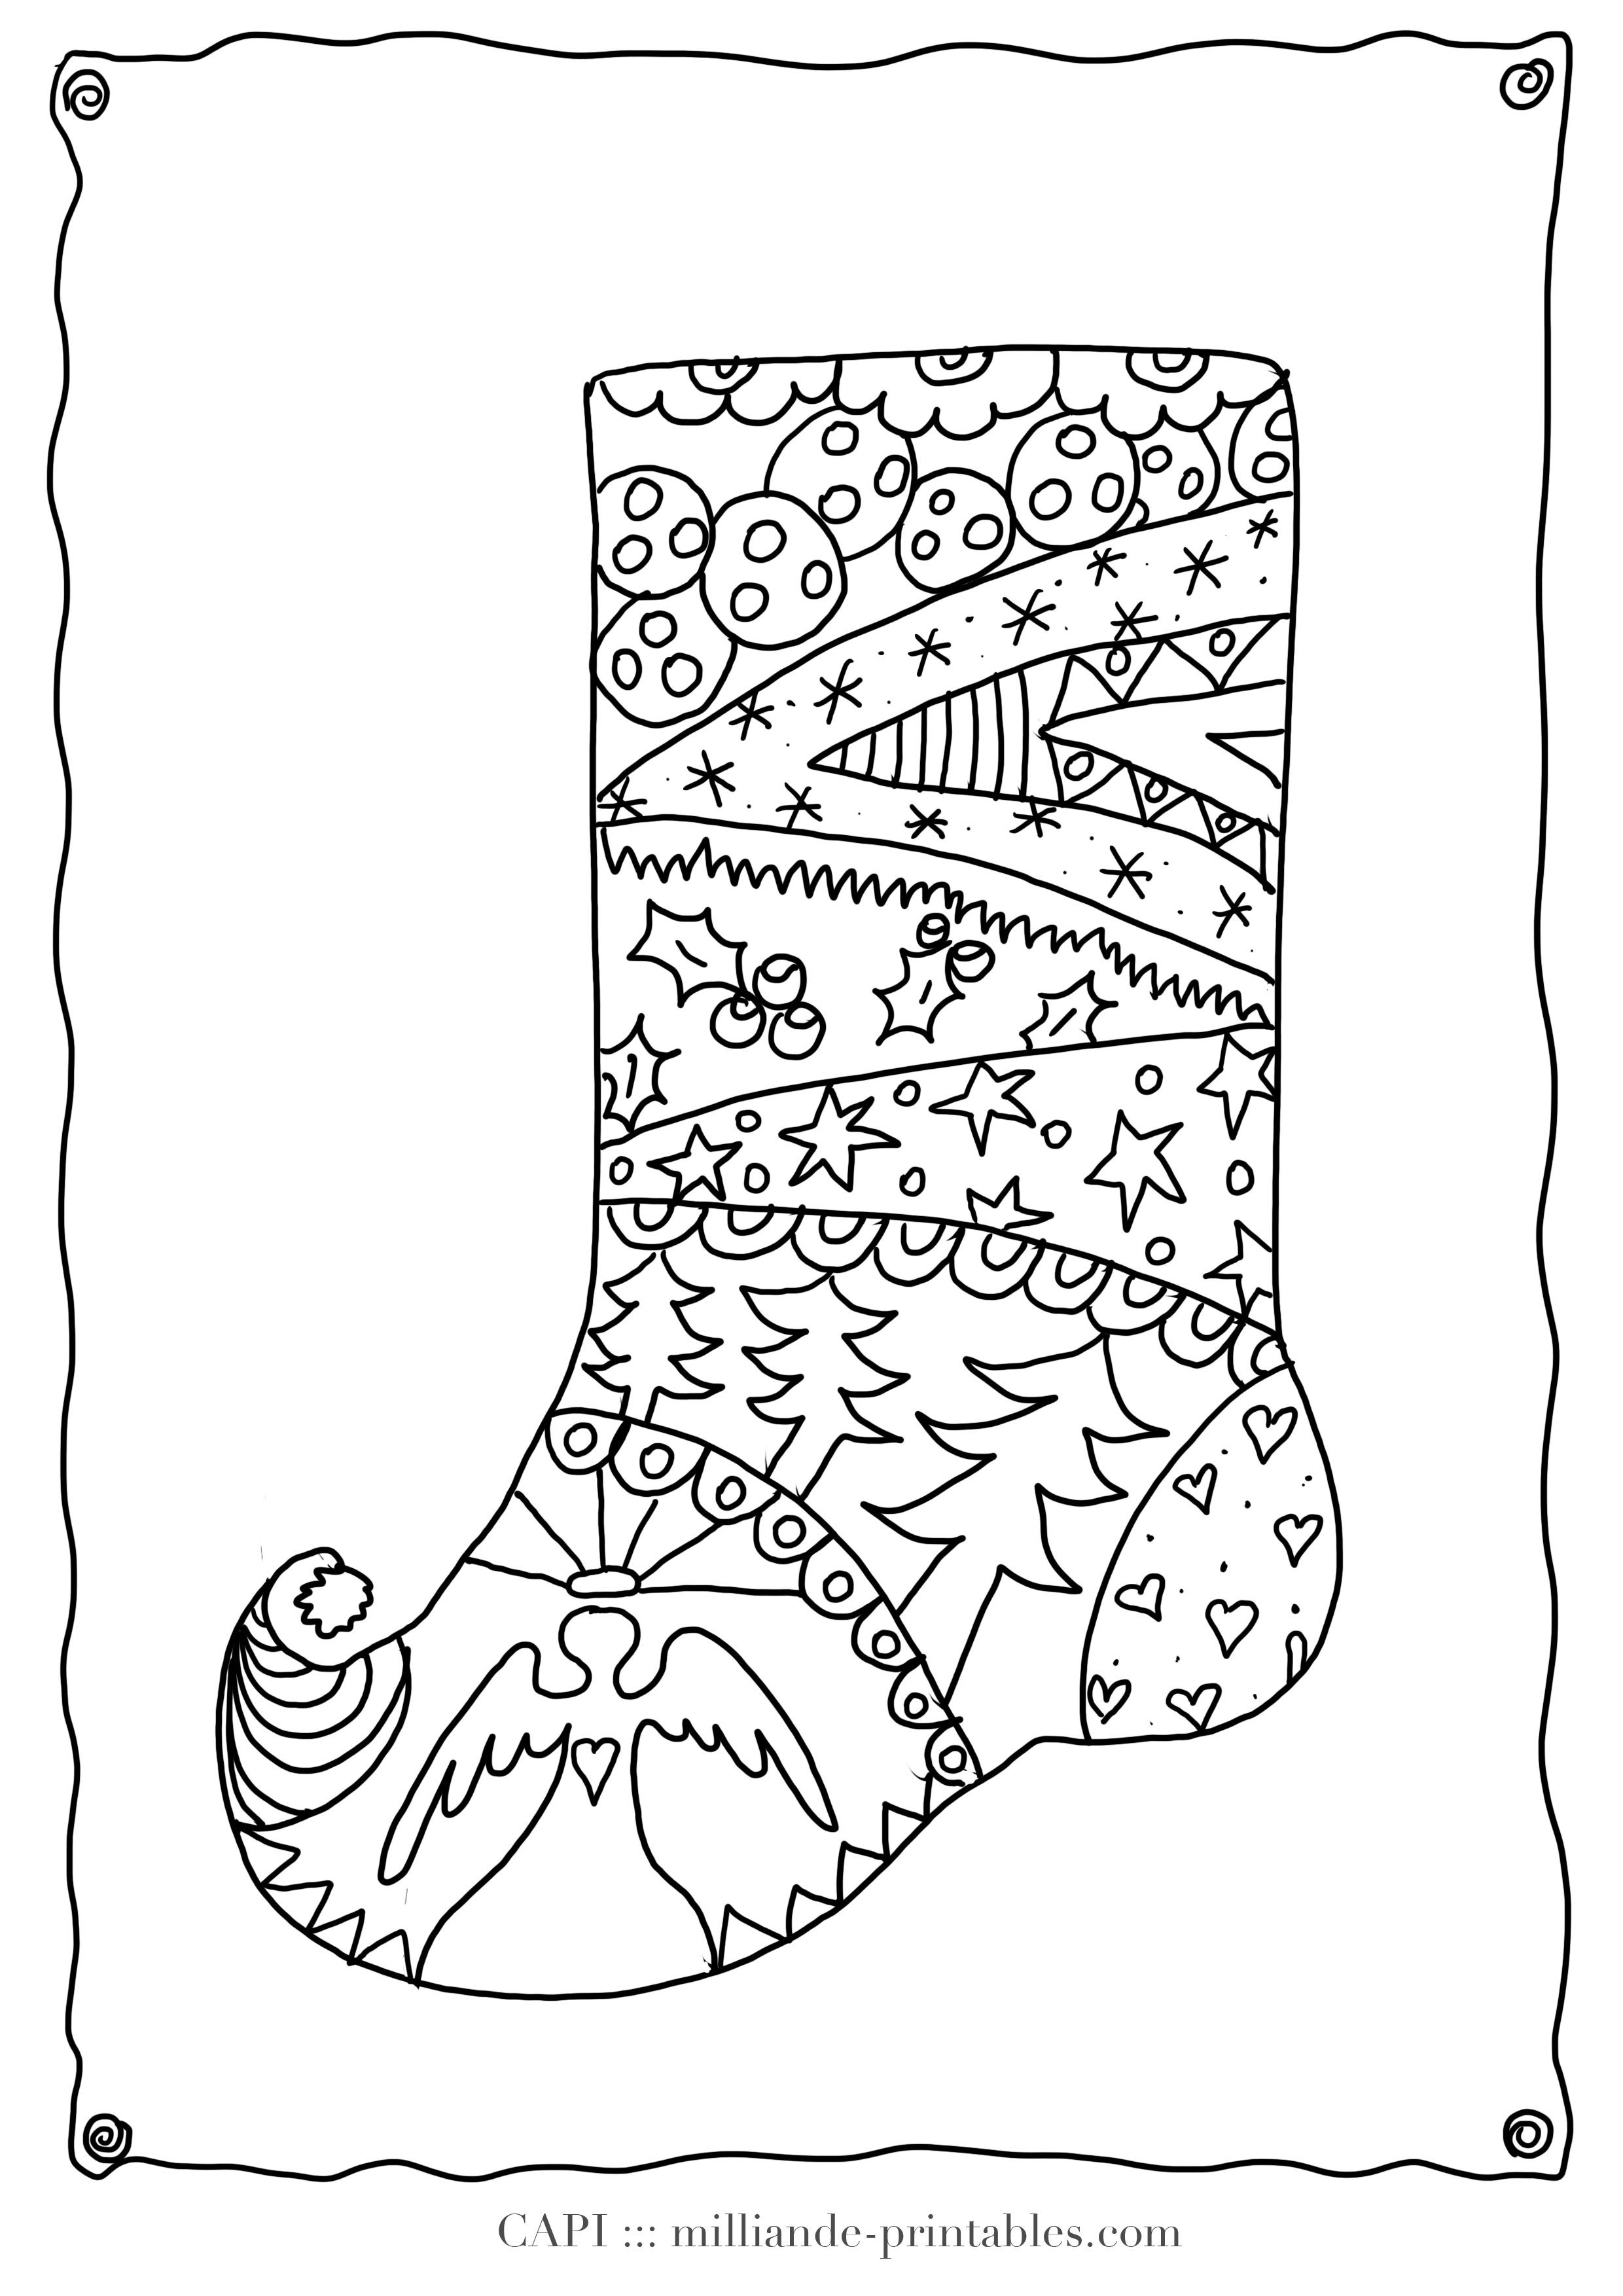 Christmas Coloring Pages Free Printable With Detailed Bing Images Design Pinterest